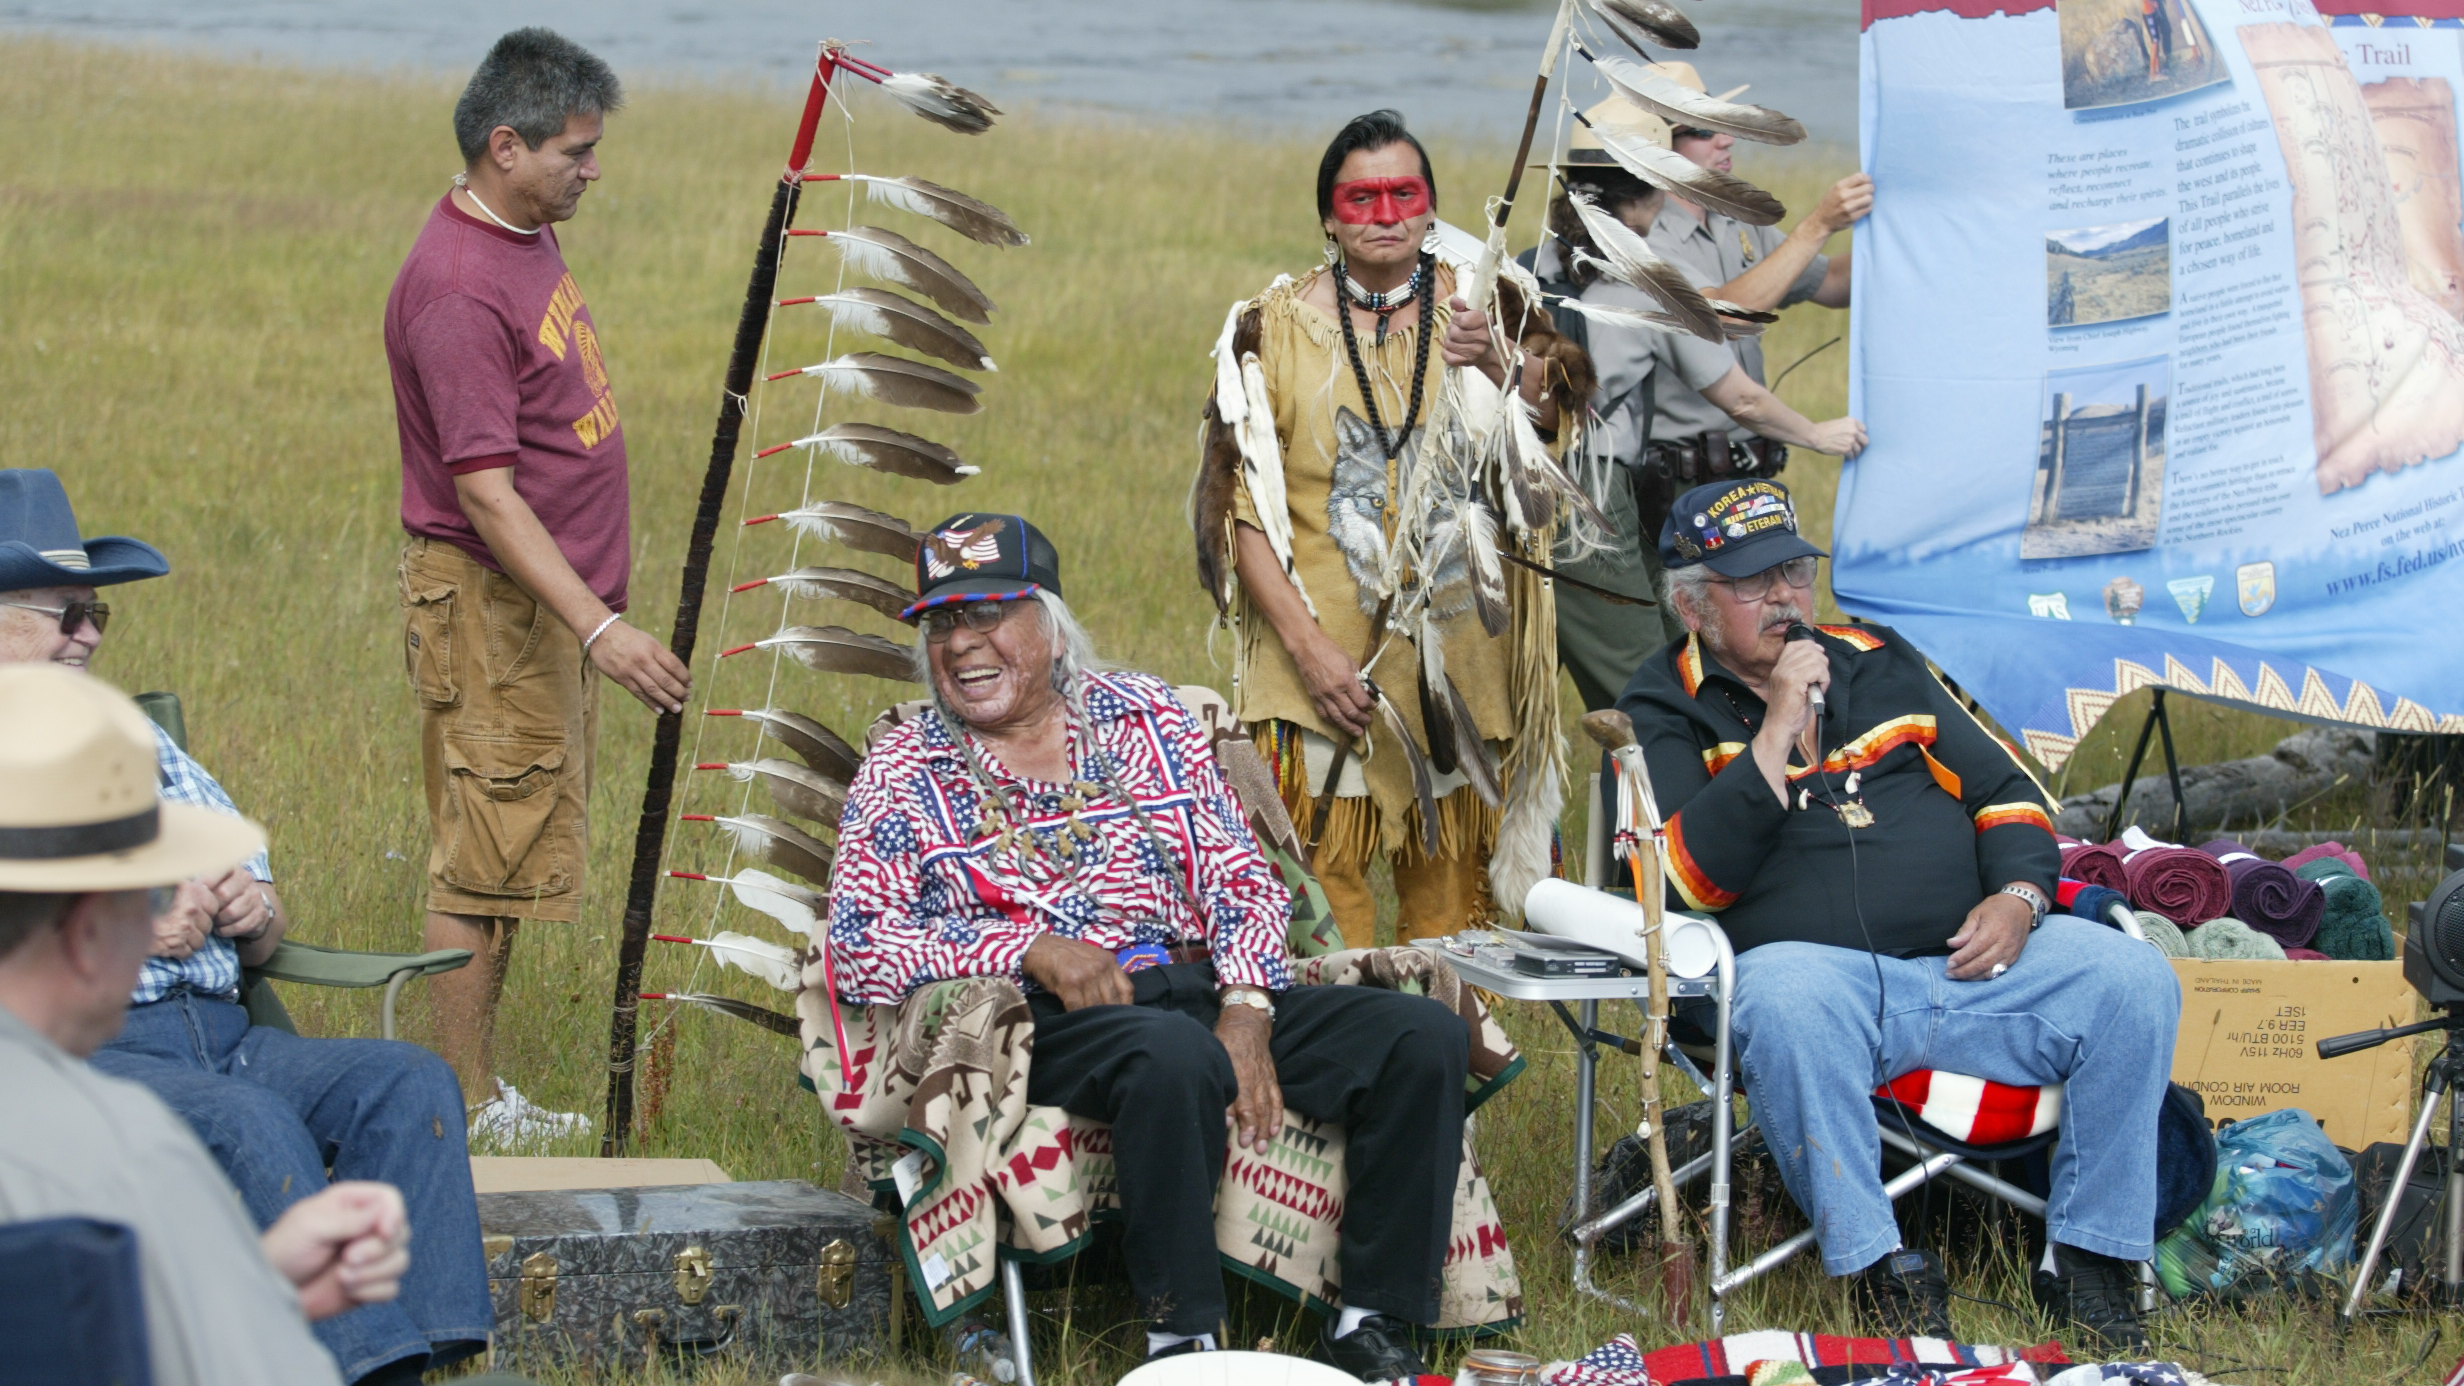 Nez Perce tribe members and NPS Rangers sit together during a commemoration of the Nez Perce Trail.